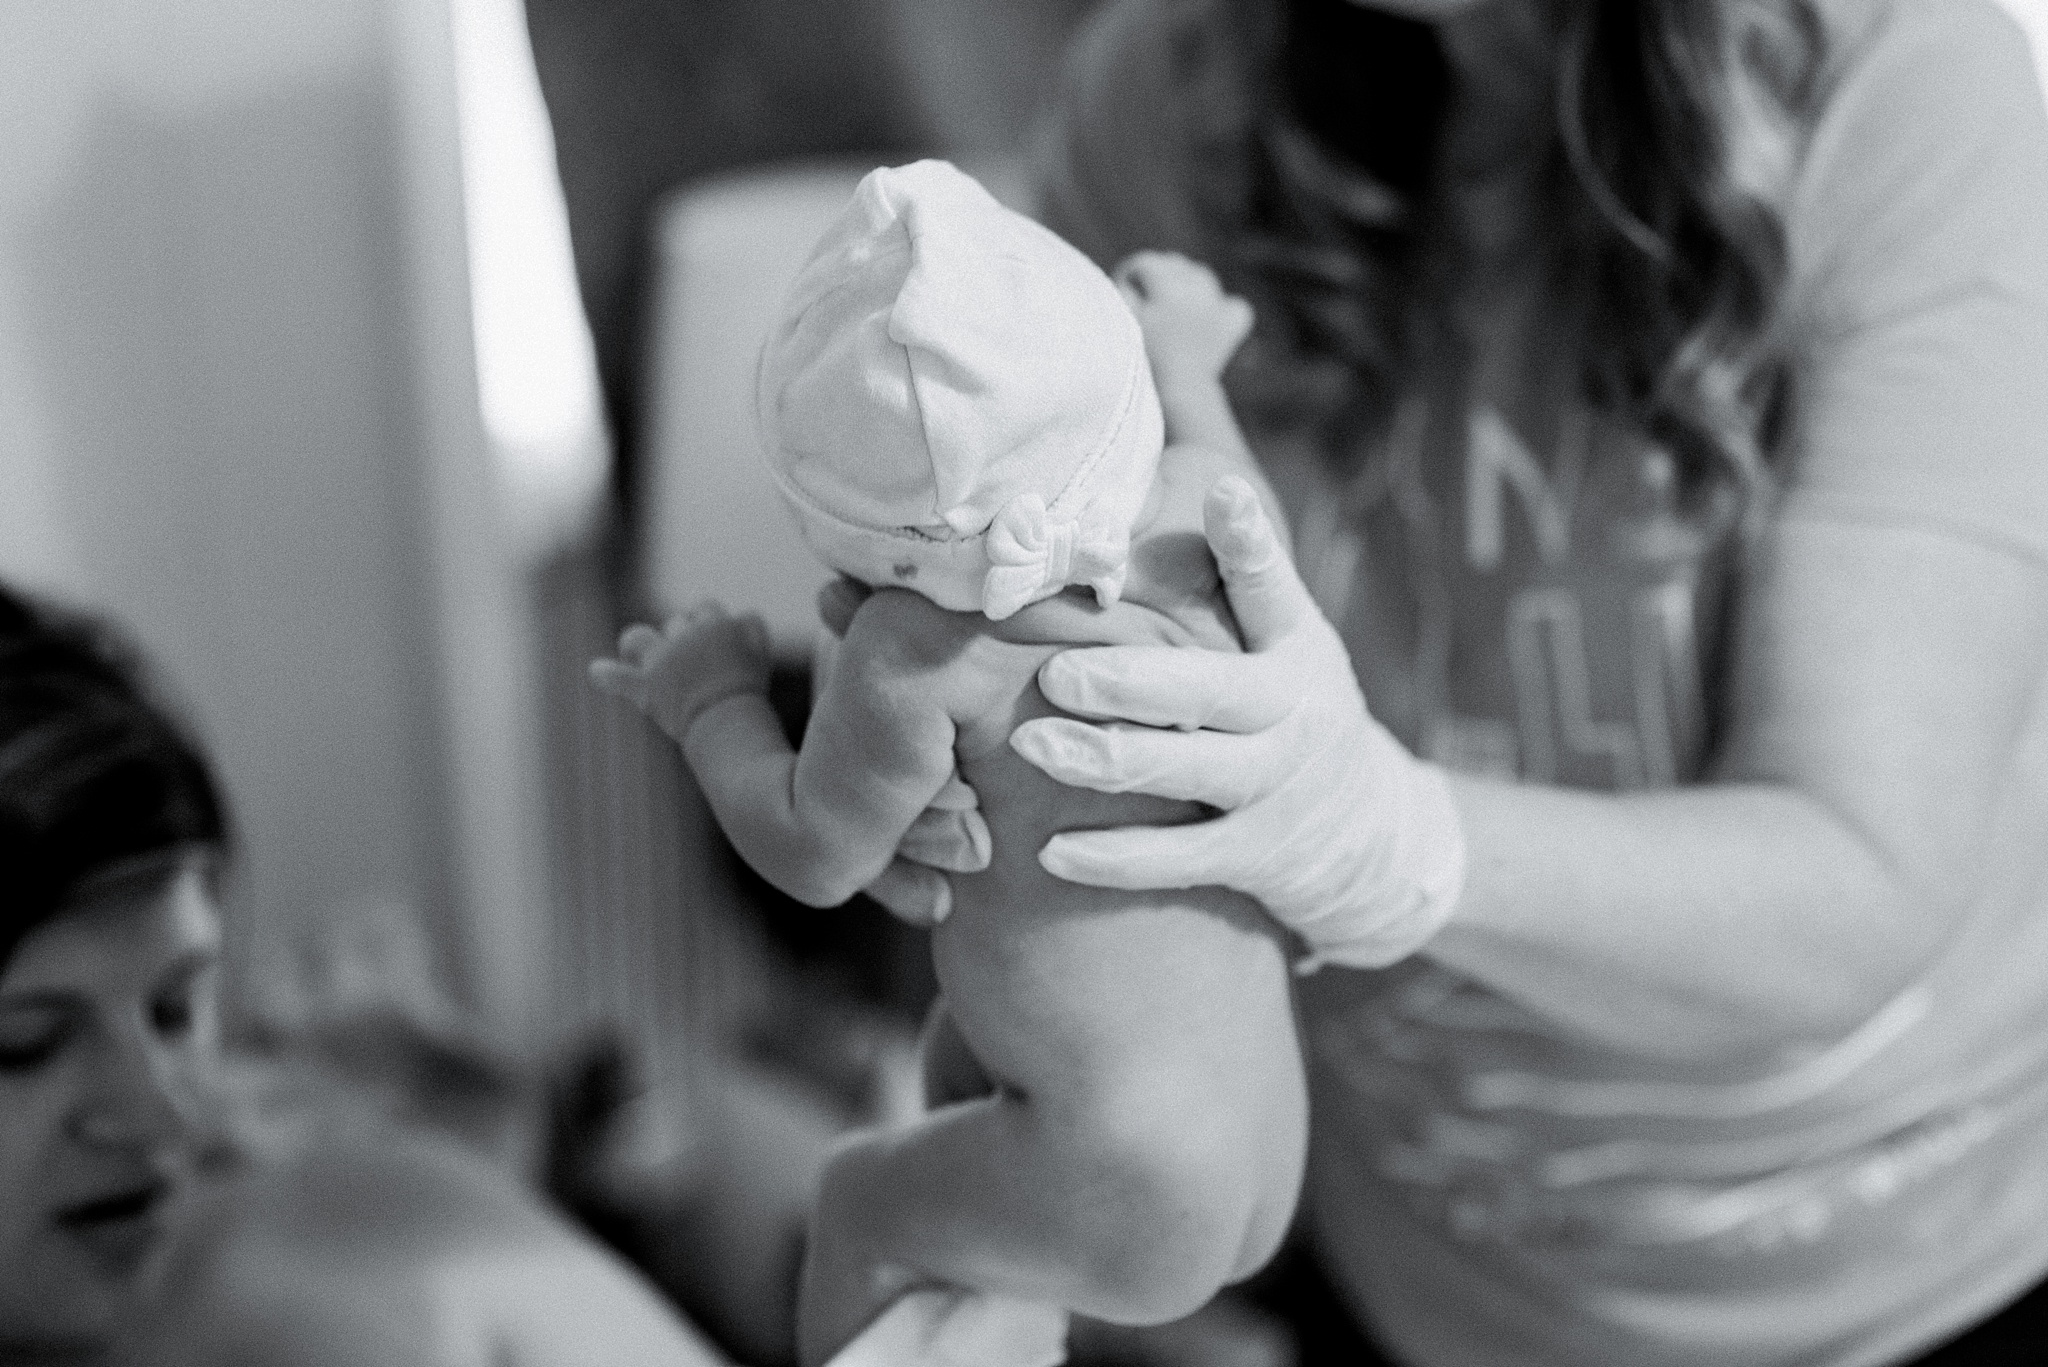 griffin-ga-natural-home-birth-photographer-brittany-simmons-baby-189.jpg